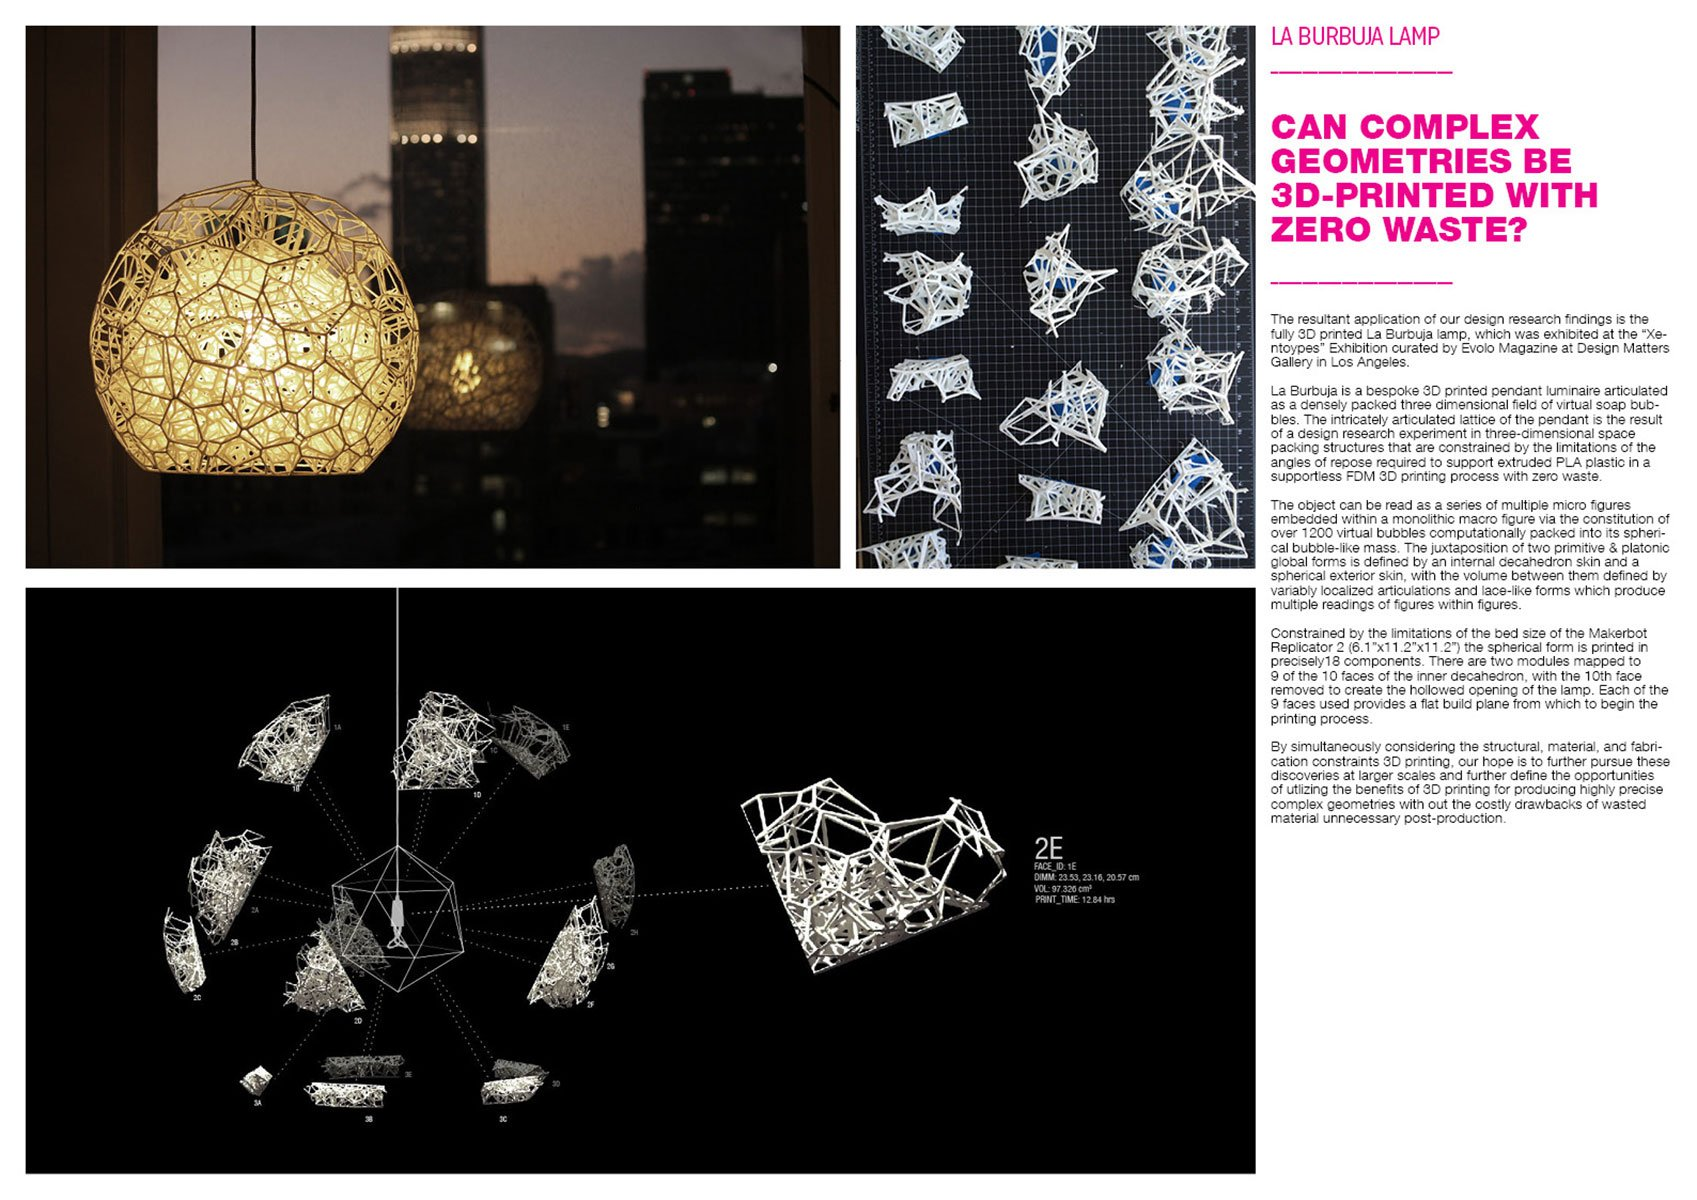 Can complex geometries be printed with zero waste? }